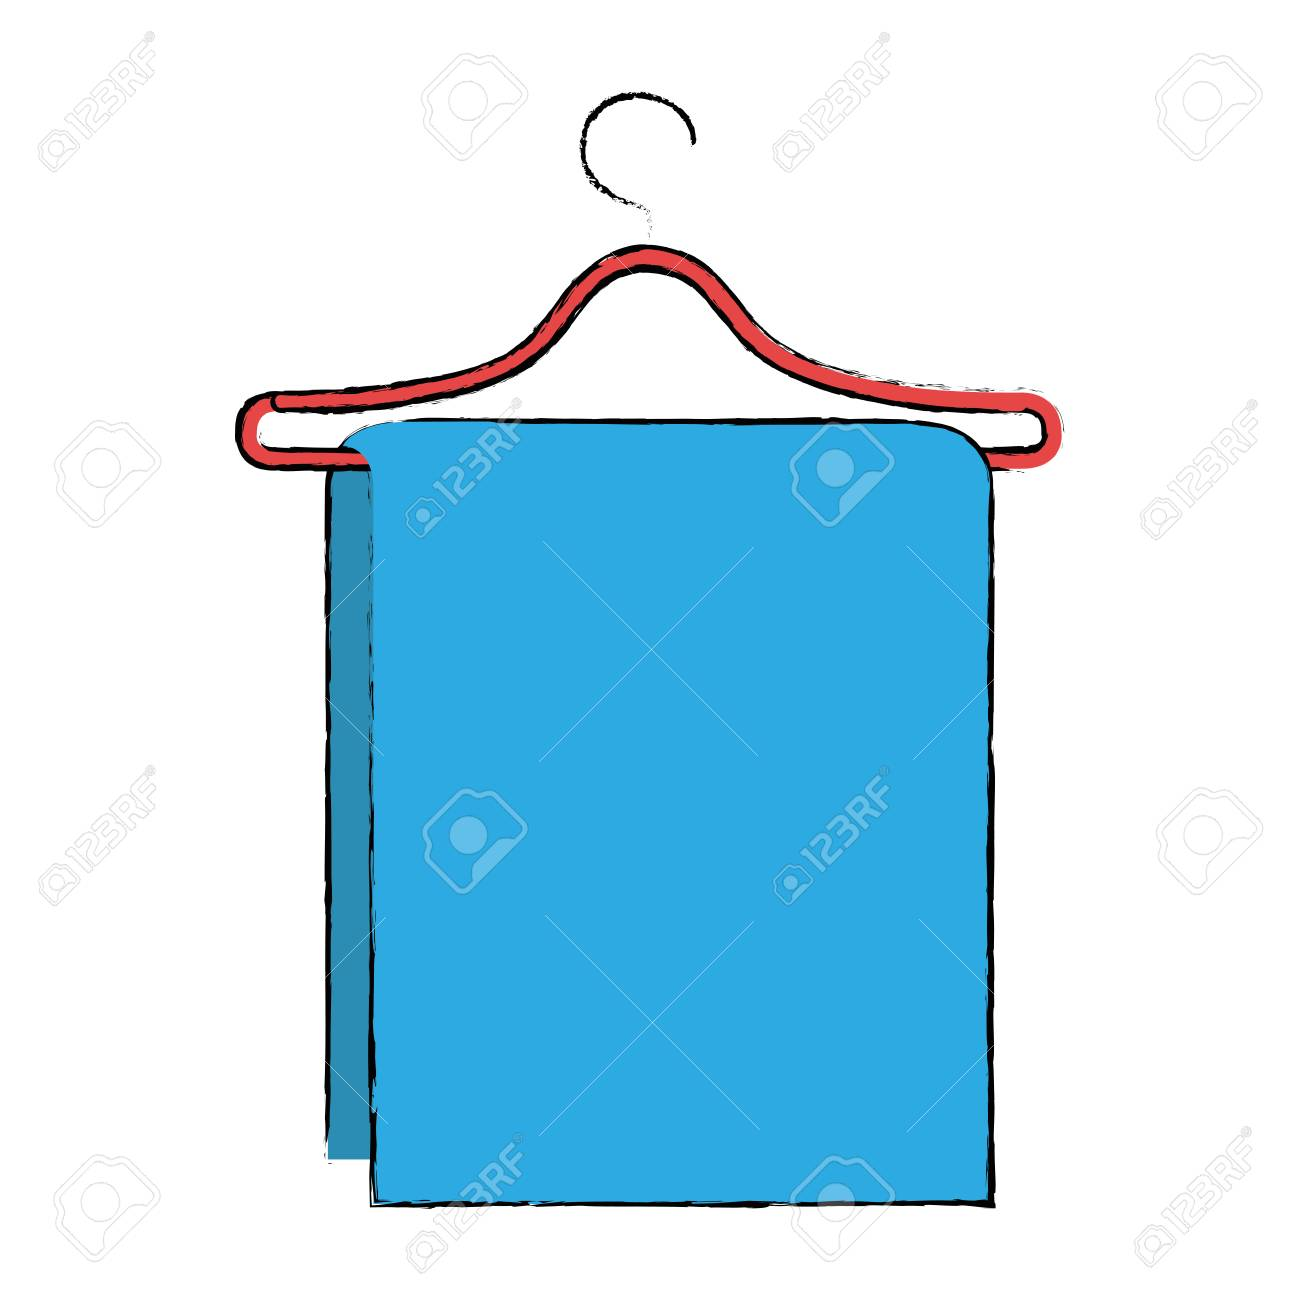 Towel Hanging In Wire Hook Vector Illustration Design Royalty Free ...